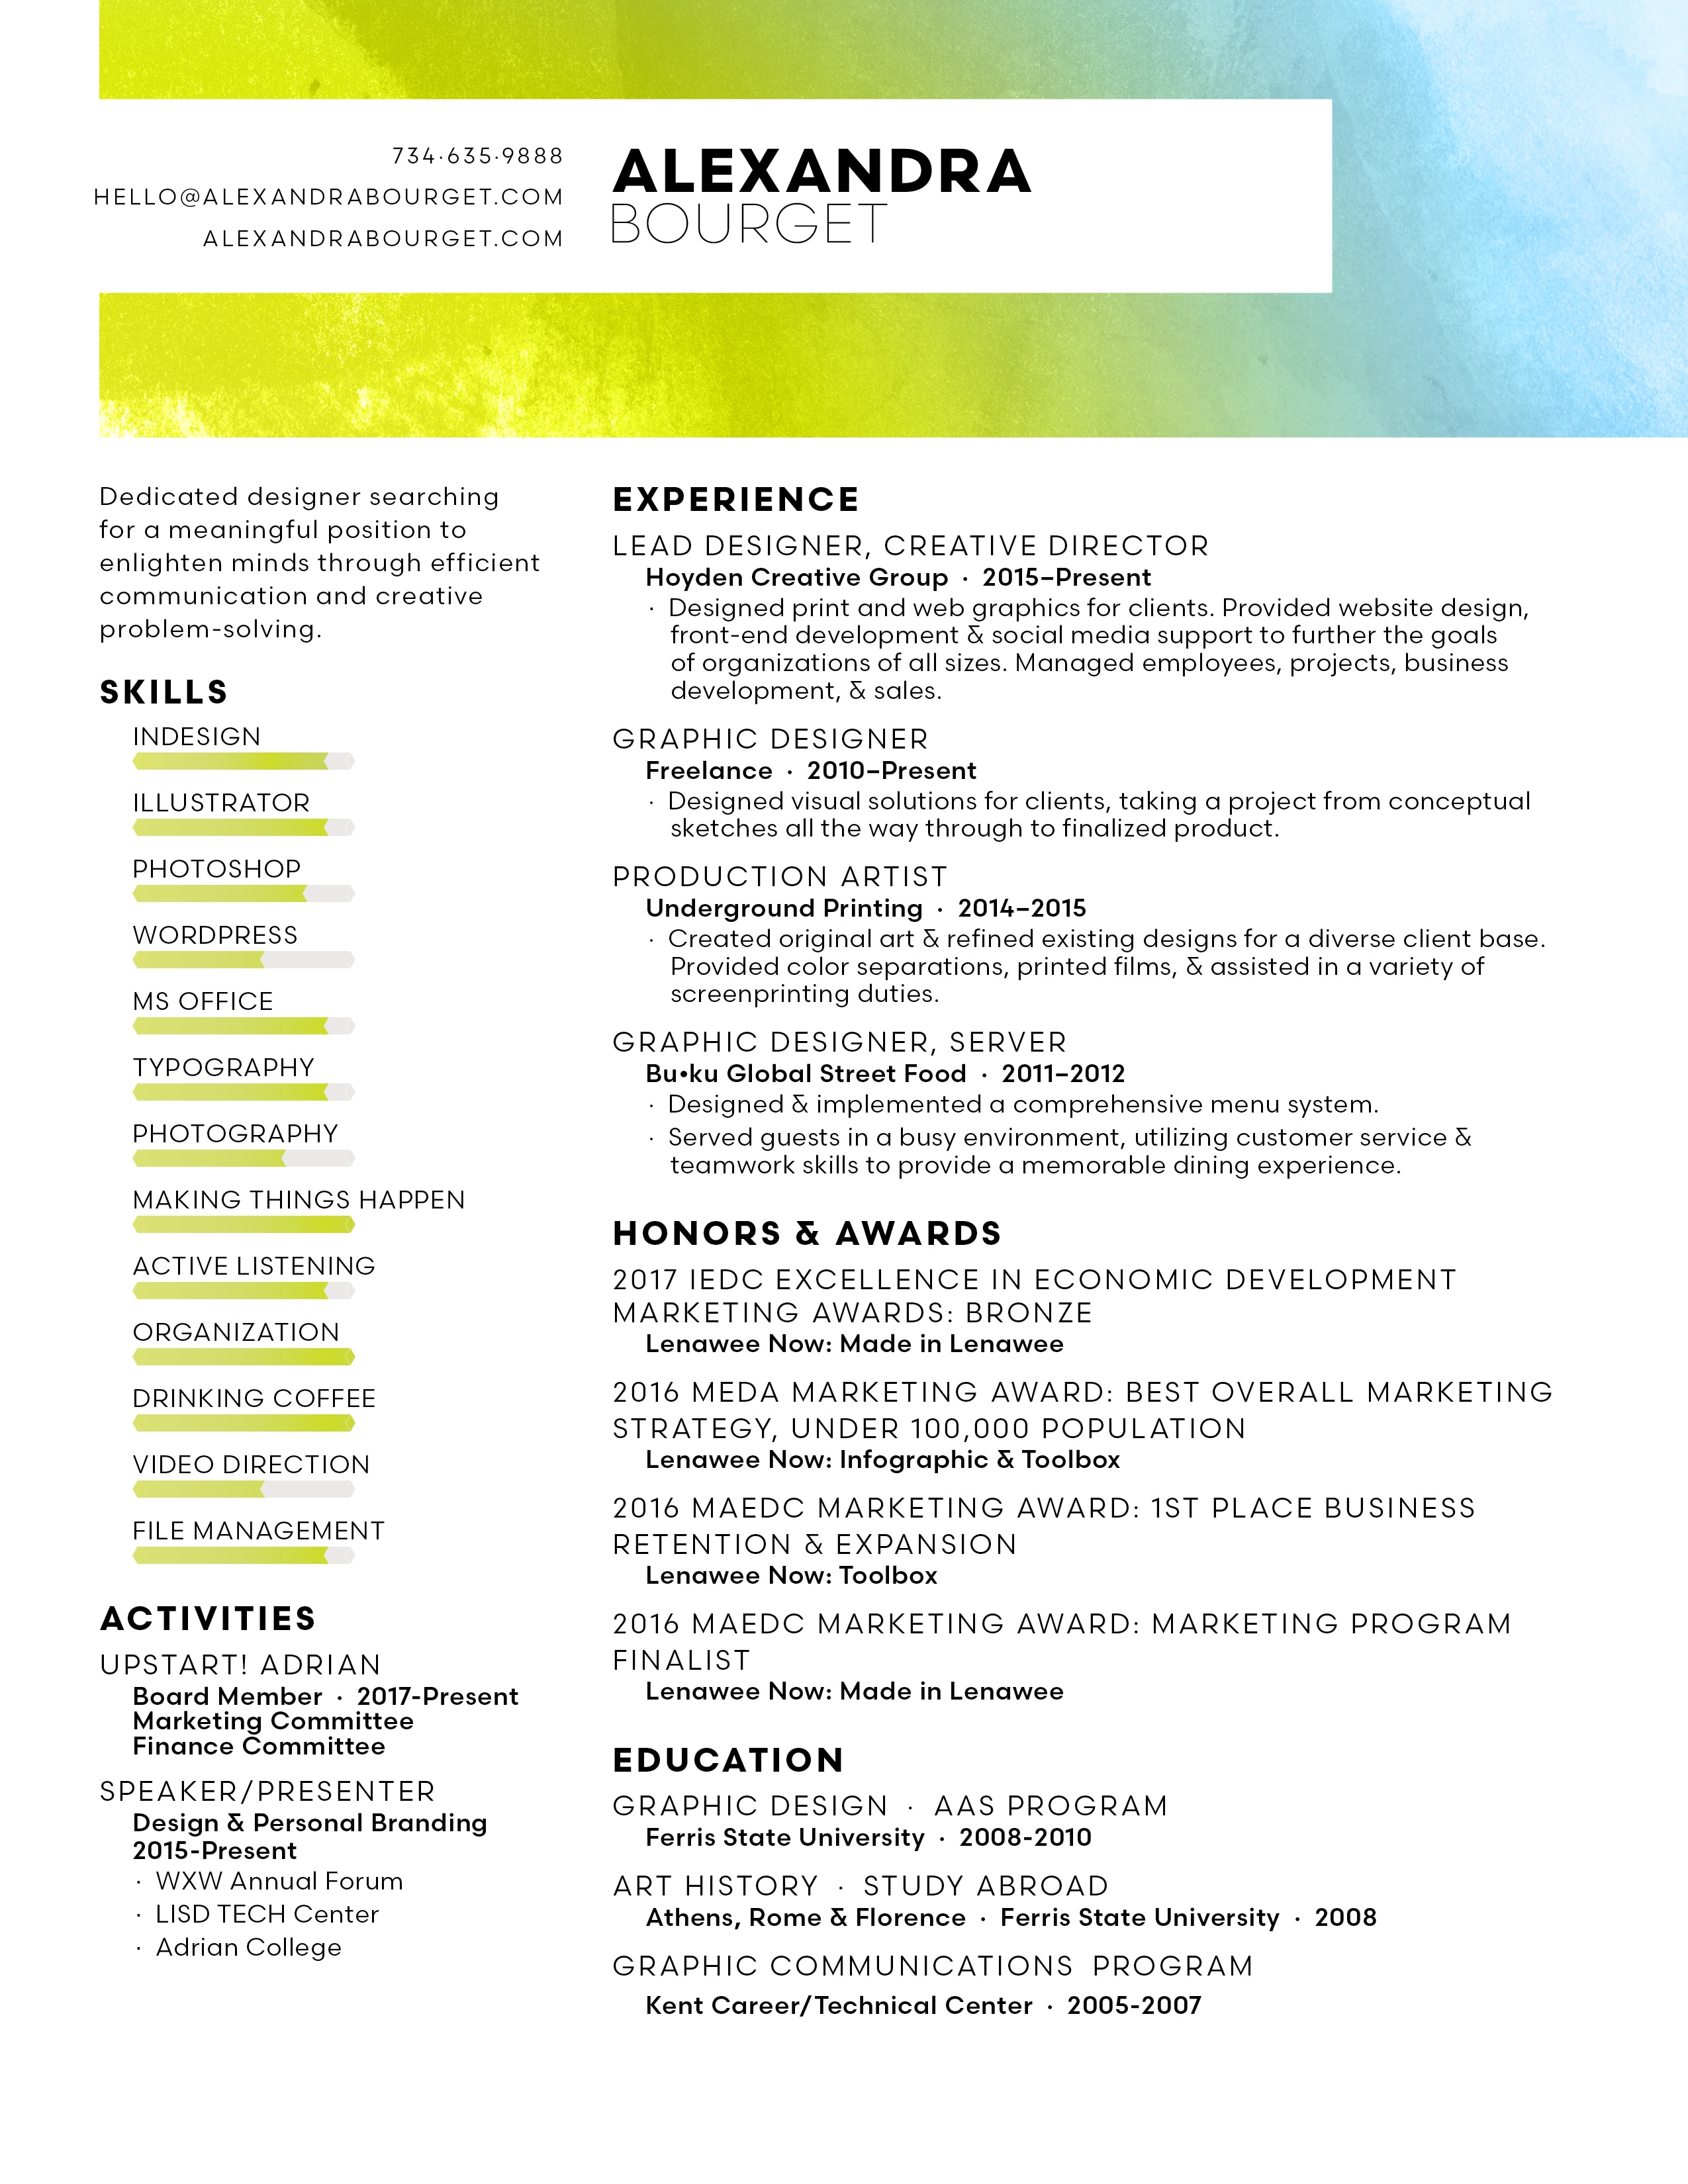 Unusual resume toolbox gallery entry level resume templates charming resume toolbox gallery entry level resume templates 1betcityfo Images